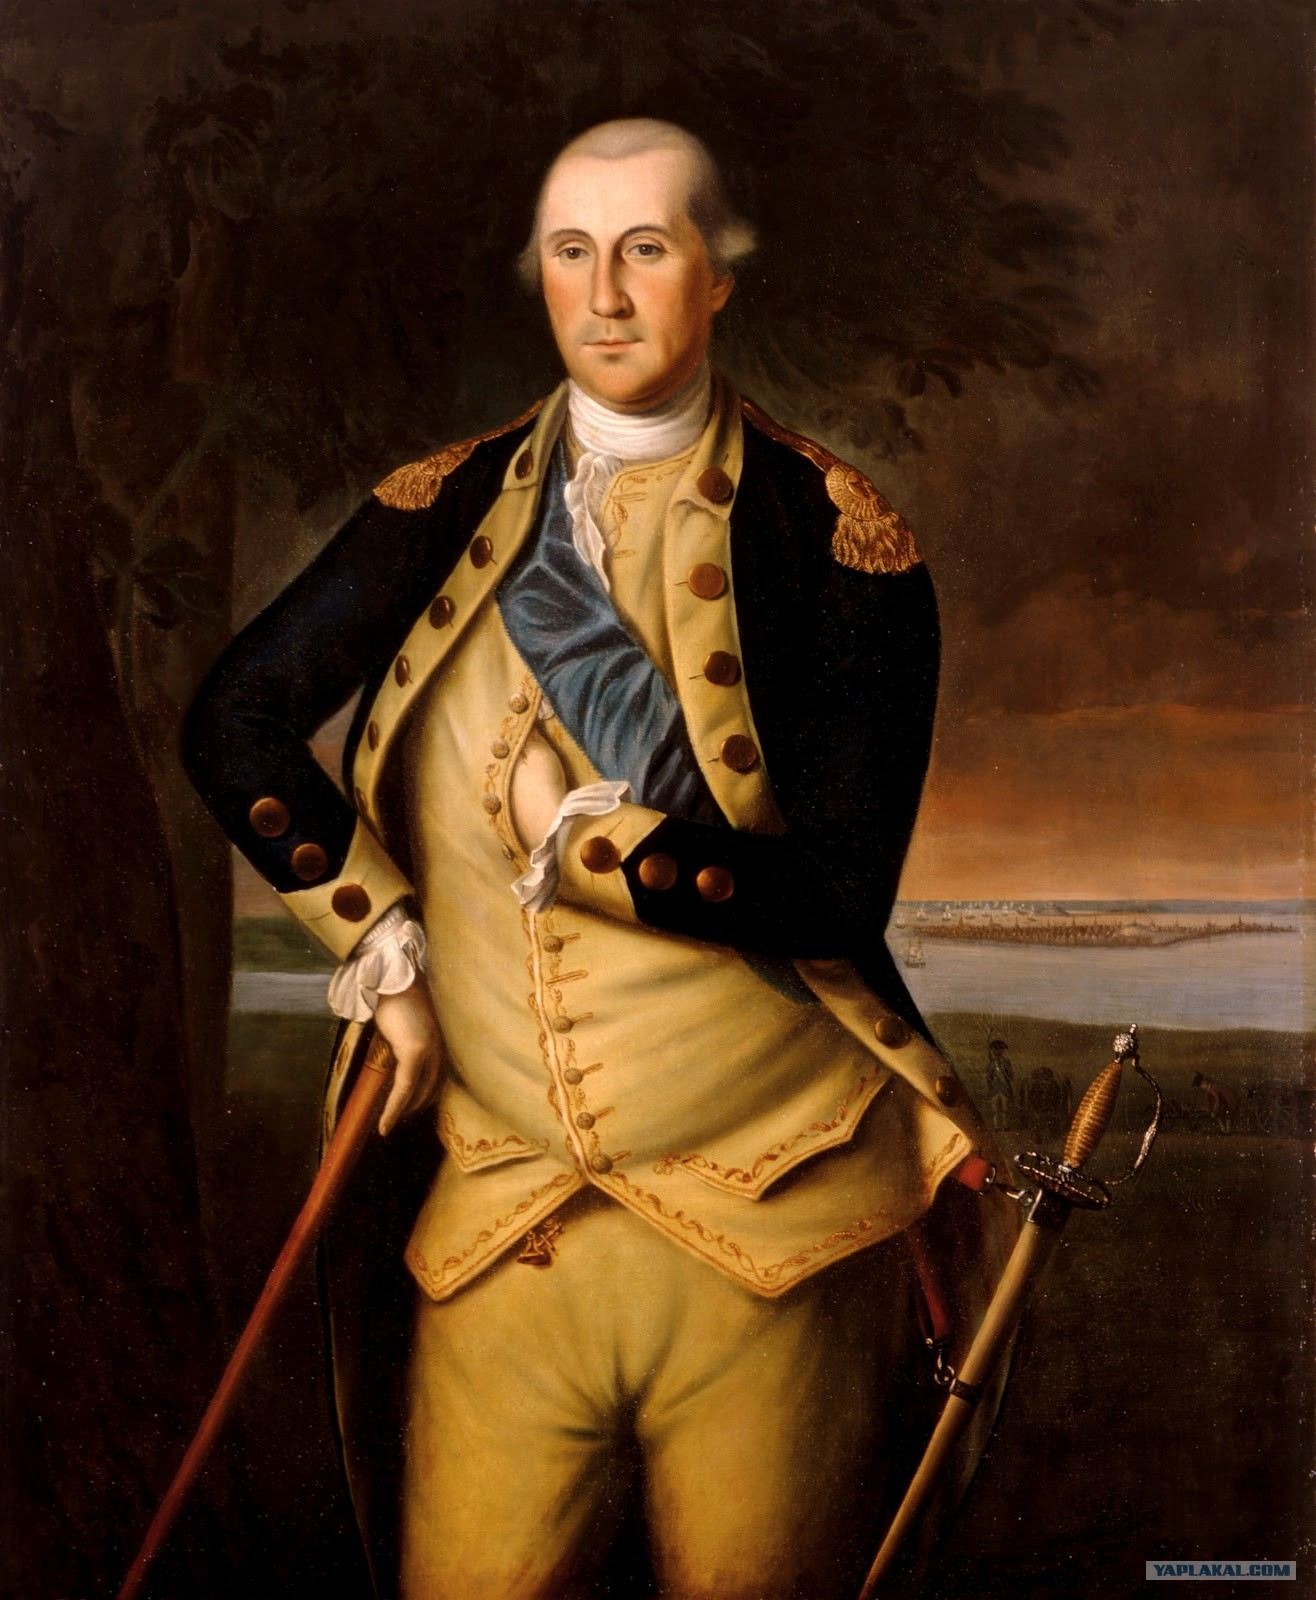 george washington as americas first leader George washington - first american president, commander of the continental army, president of the constitutional convention, and gentleman planter these were the roles in which washington exemplified character and leadership learn more about the remarkable life of george washington in our biography below.